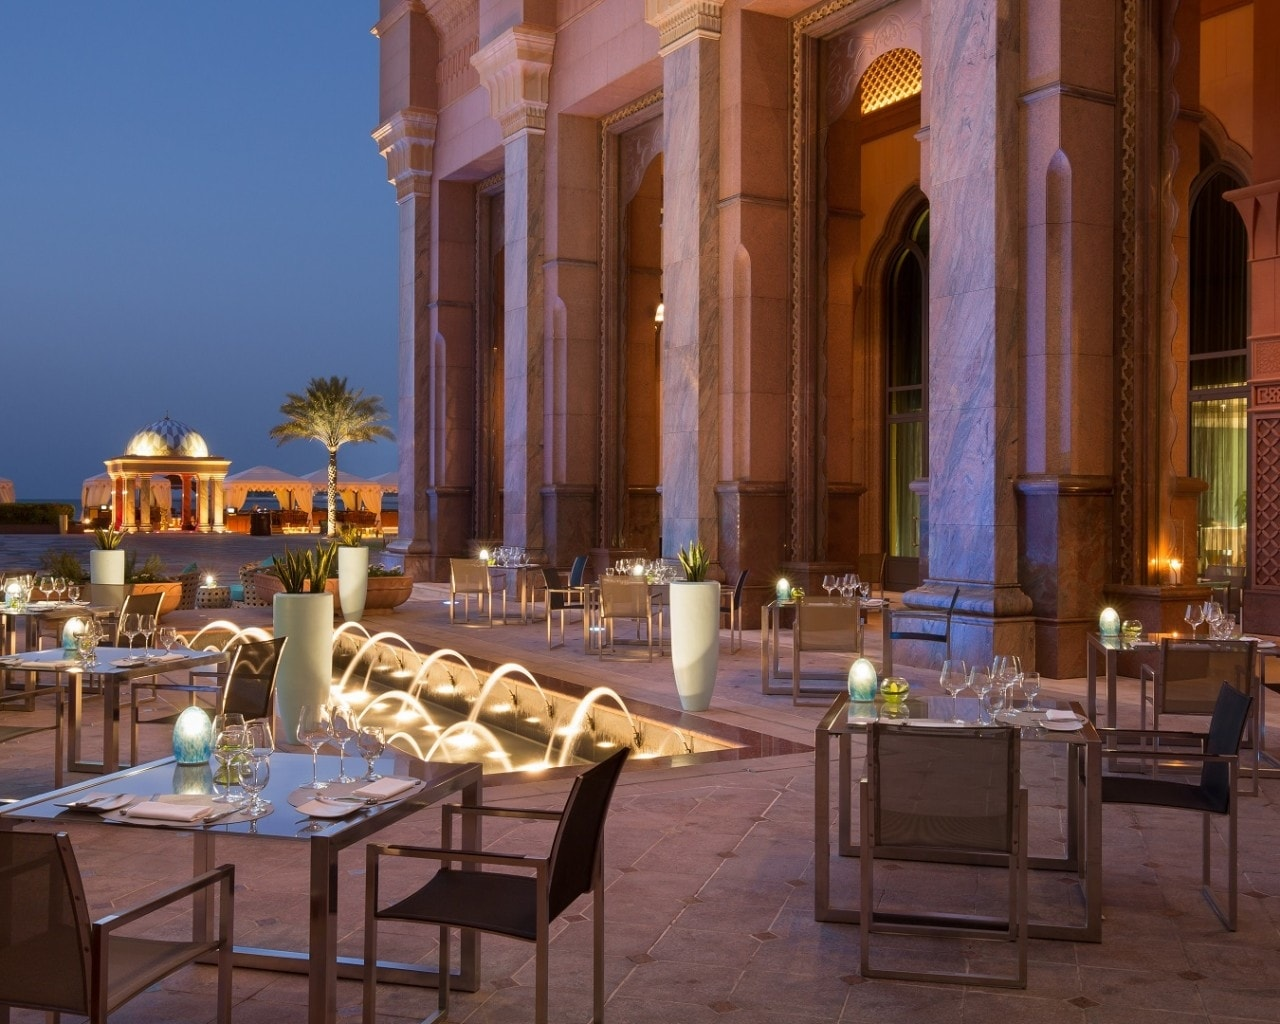 Sayad Restaurant Terrace